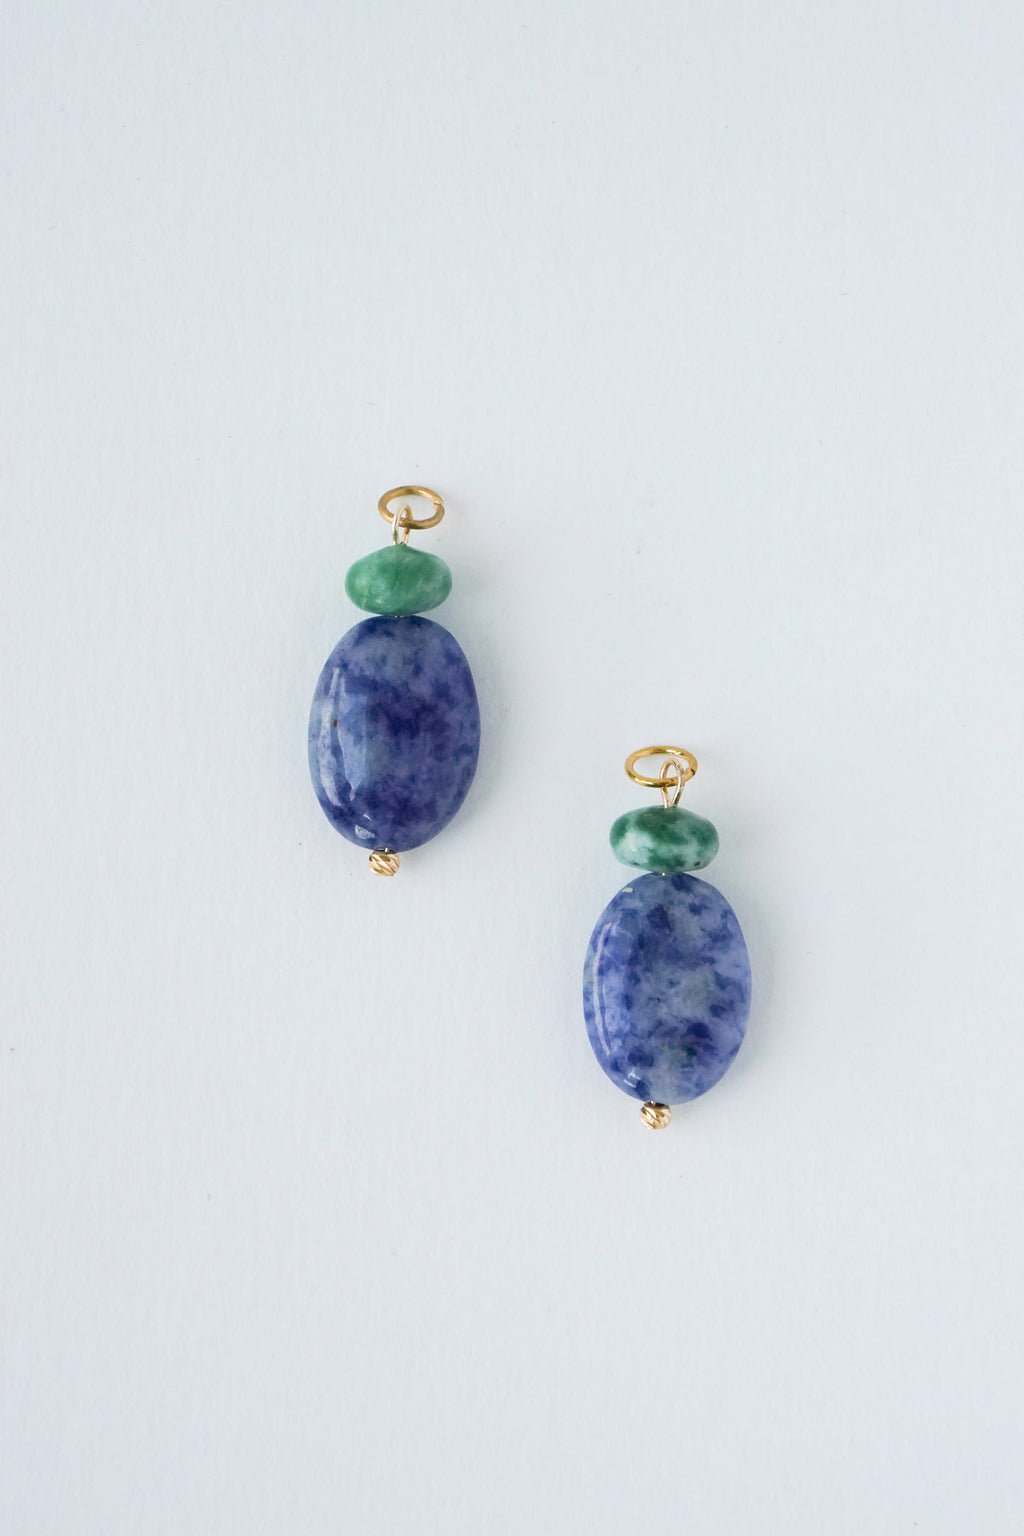 Sequoia Charms - Sodalite x African Jade